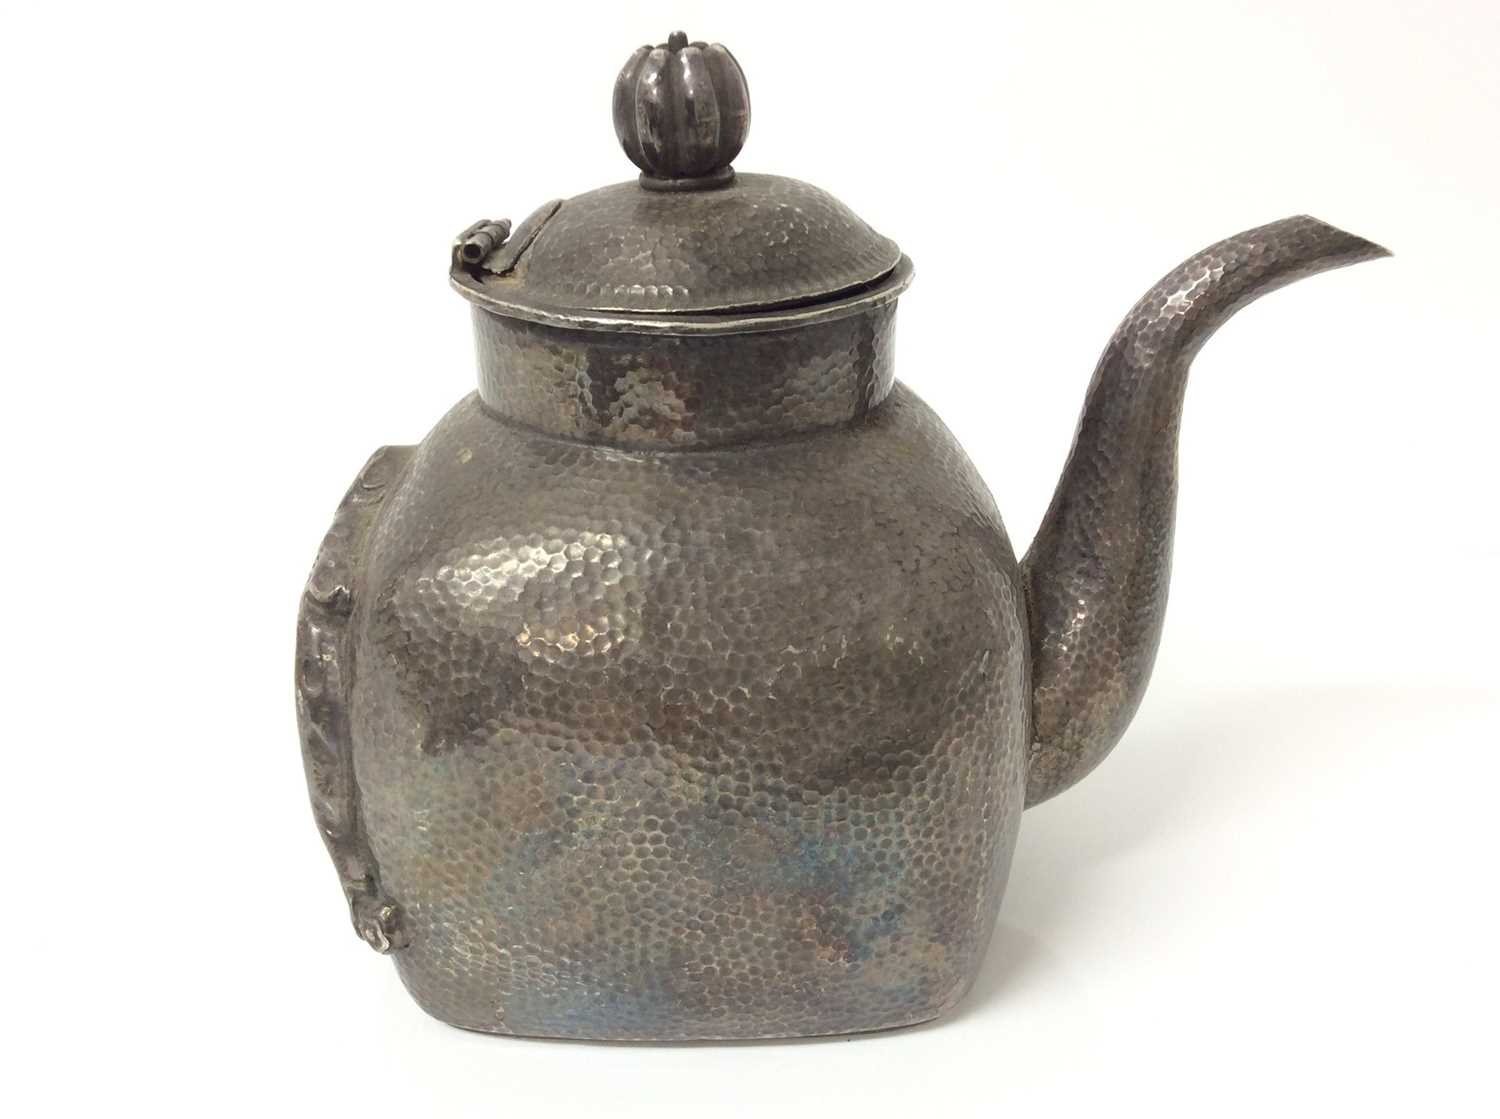 Chinese silver teapot and jug - Image 4 of 12